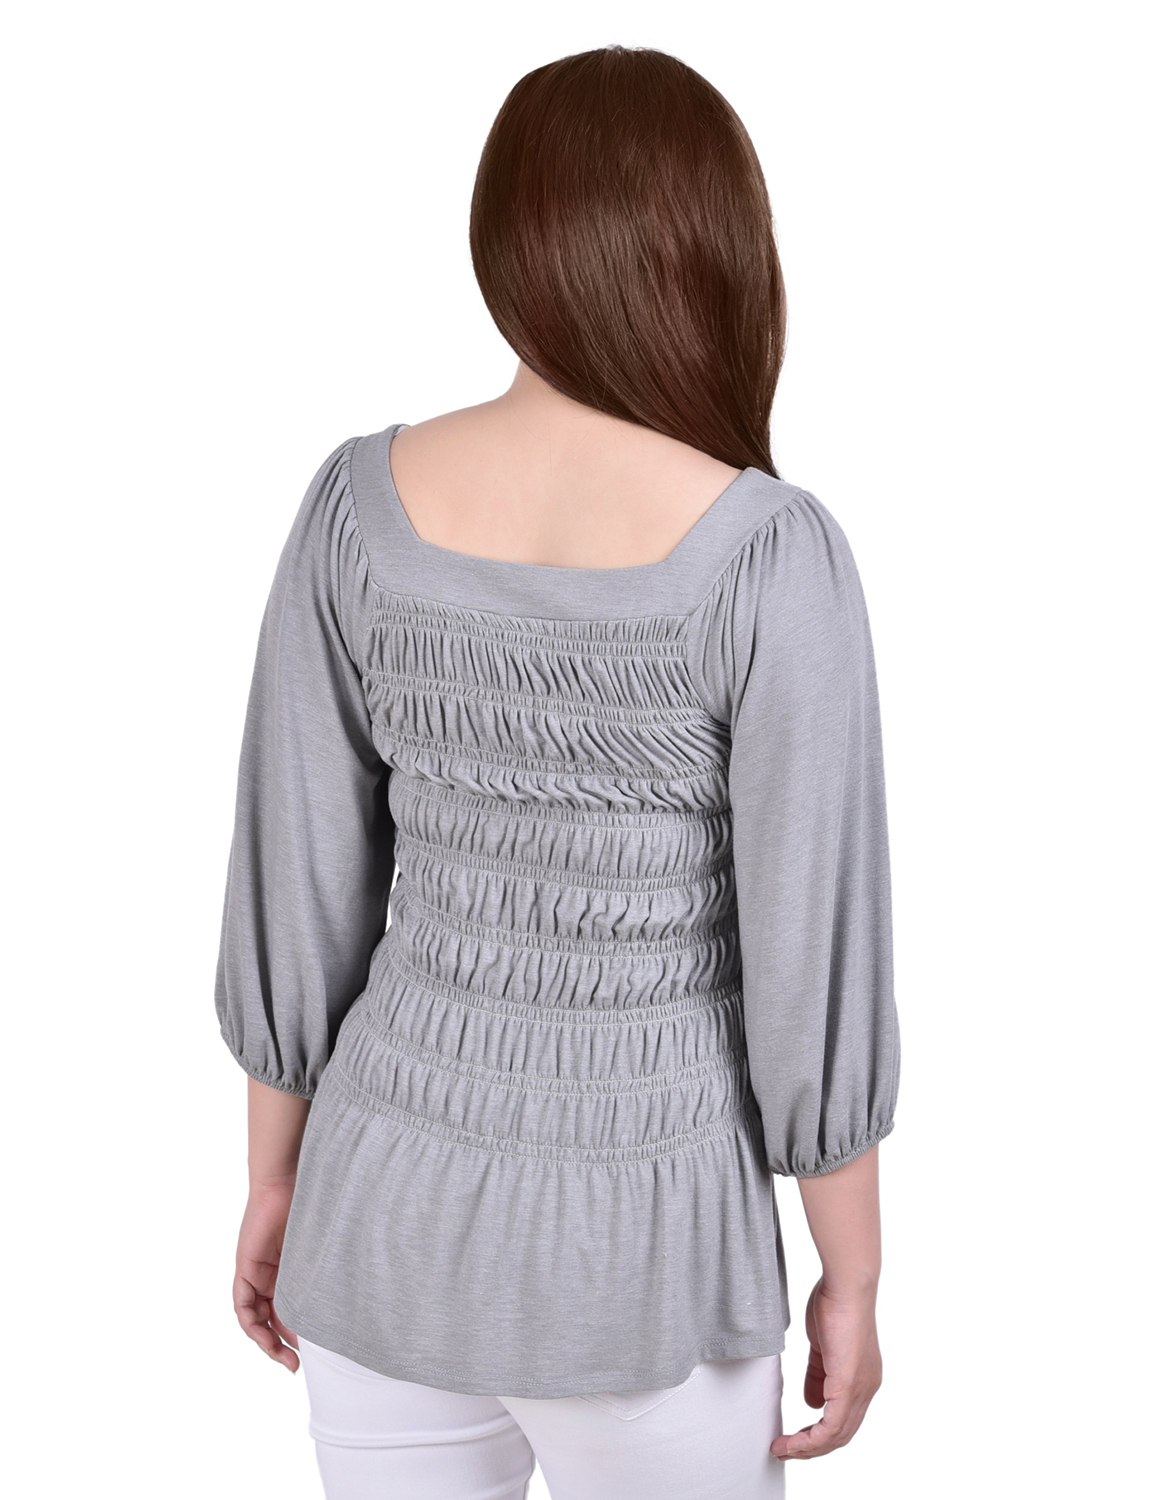 3/4 Balloon Sleeve Blouse With Smocked Body